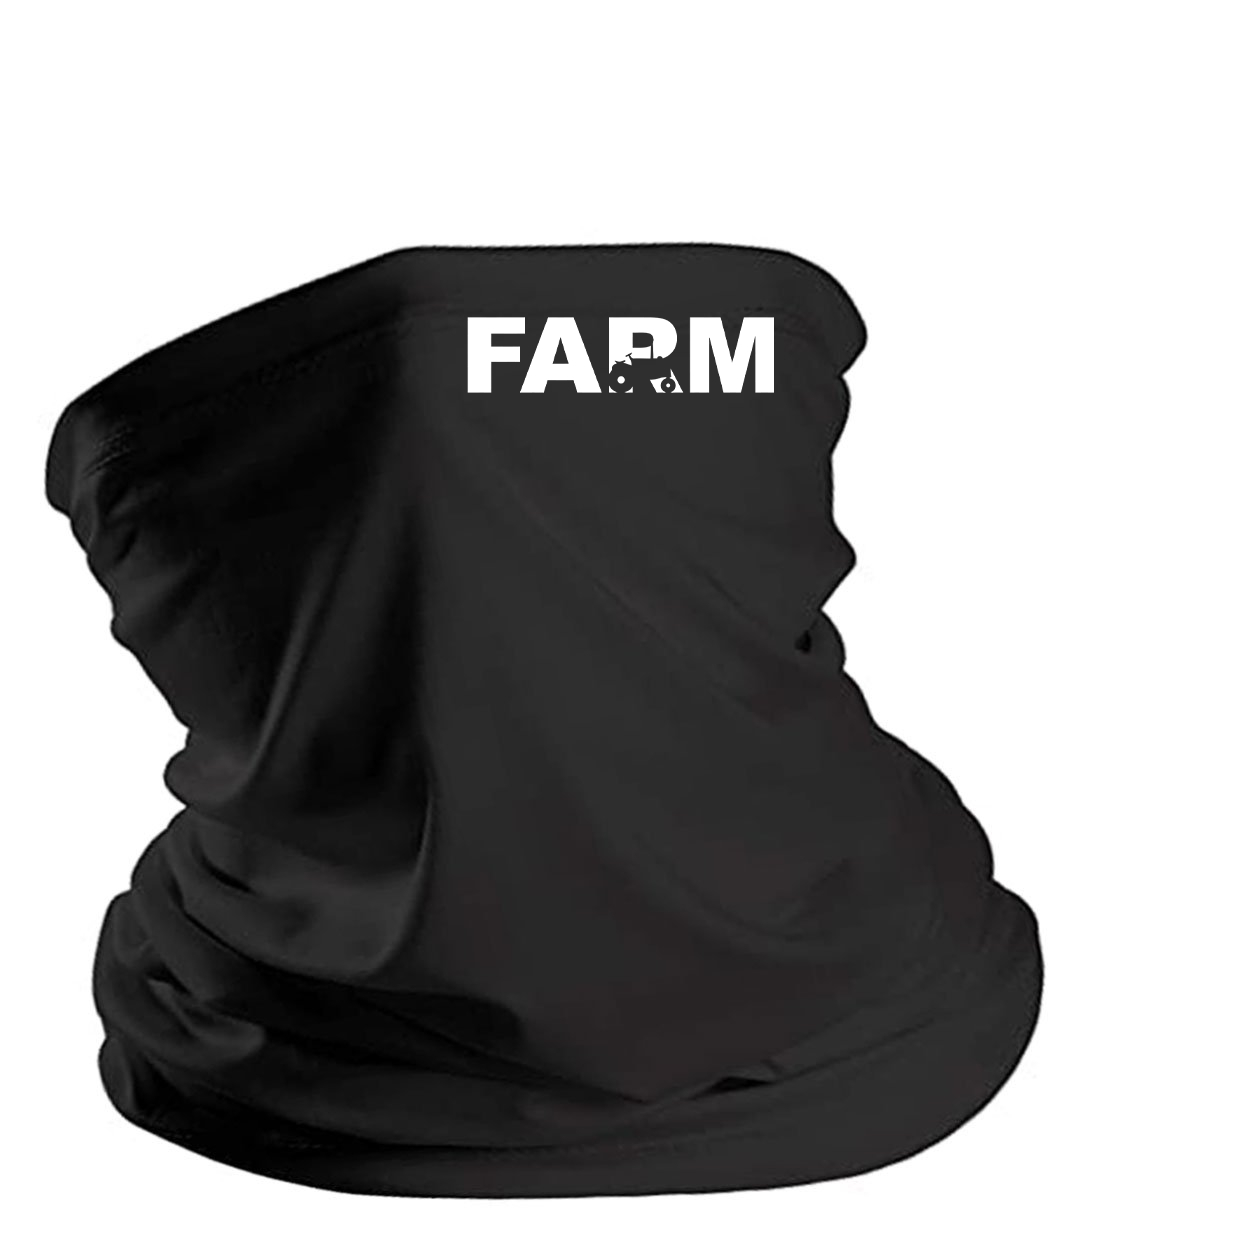 Farm Tractor Logo Night Out Lightweight Neck Gaiter Face Mask Black (White Logo)